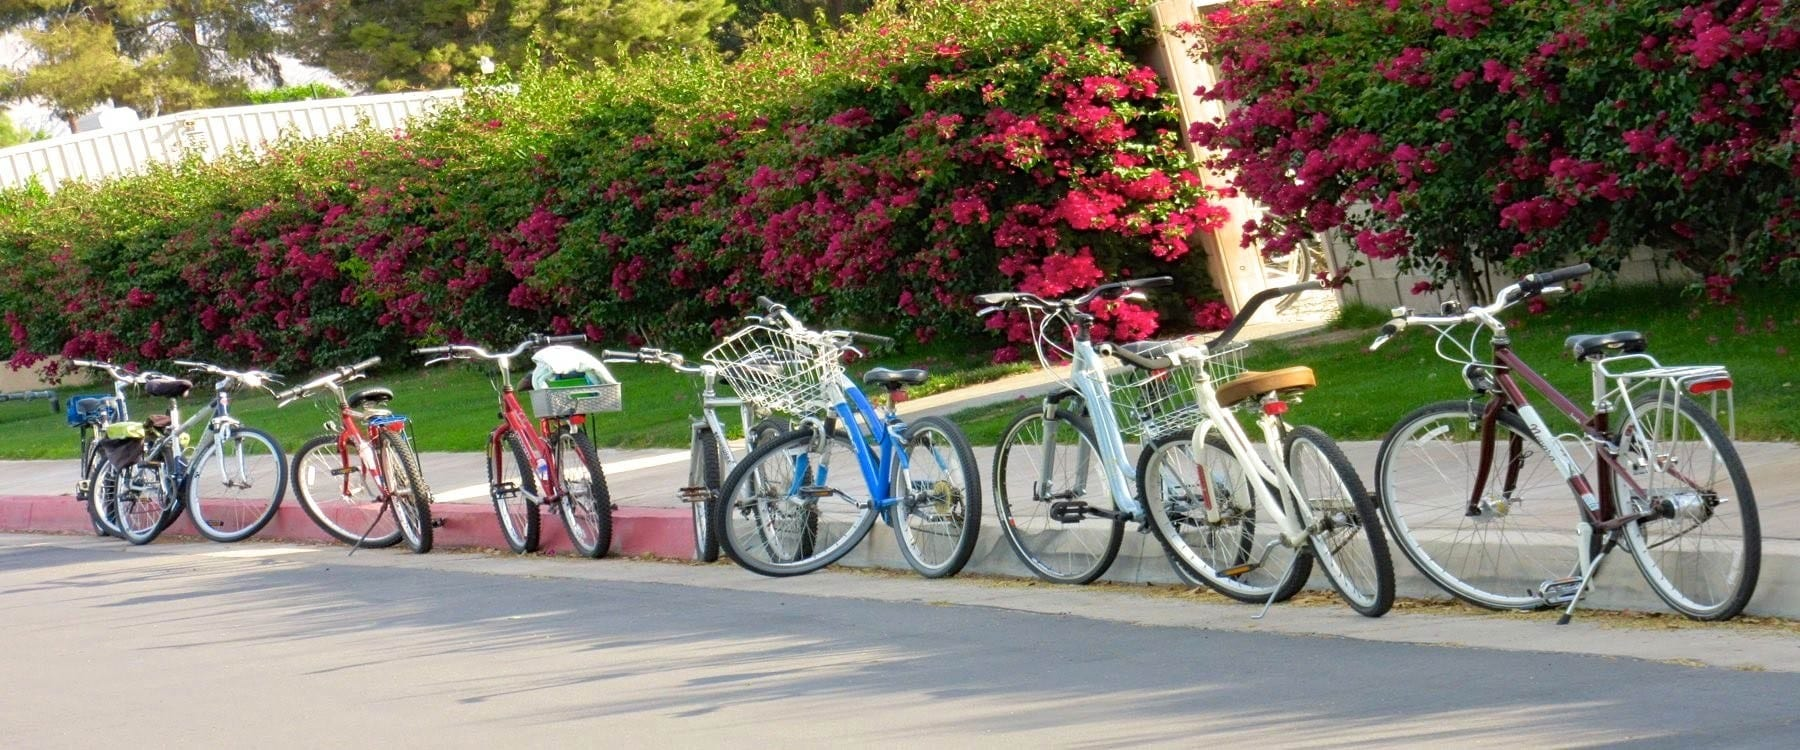 Cycle in the park or join a cycling group.